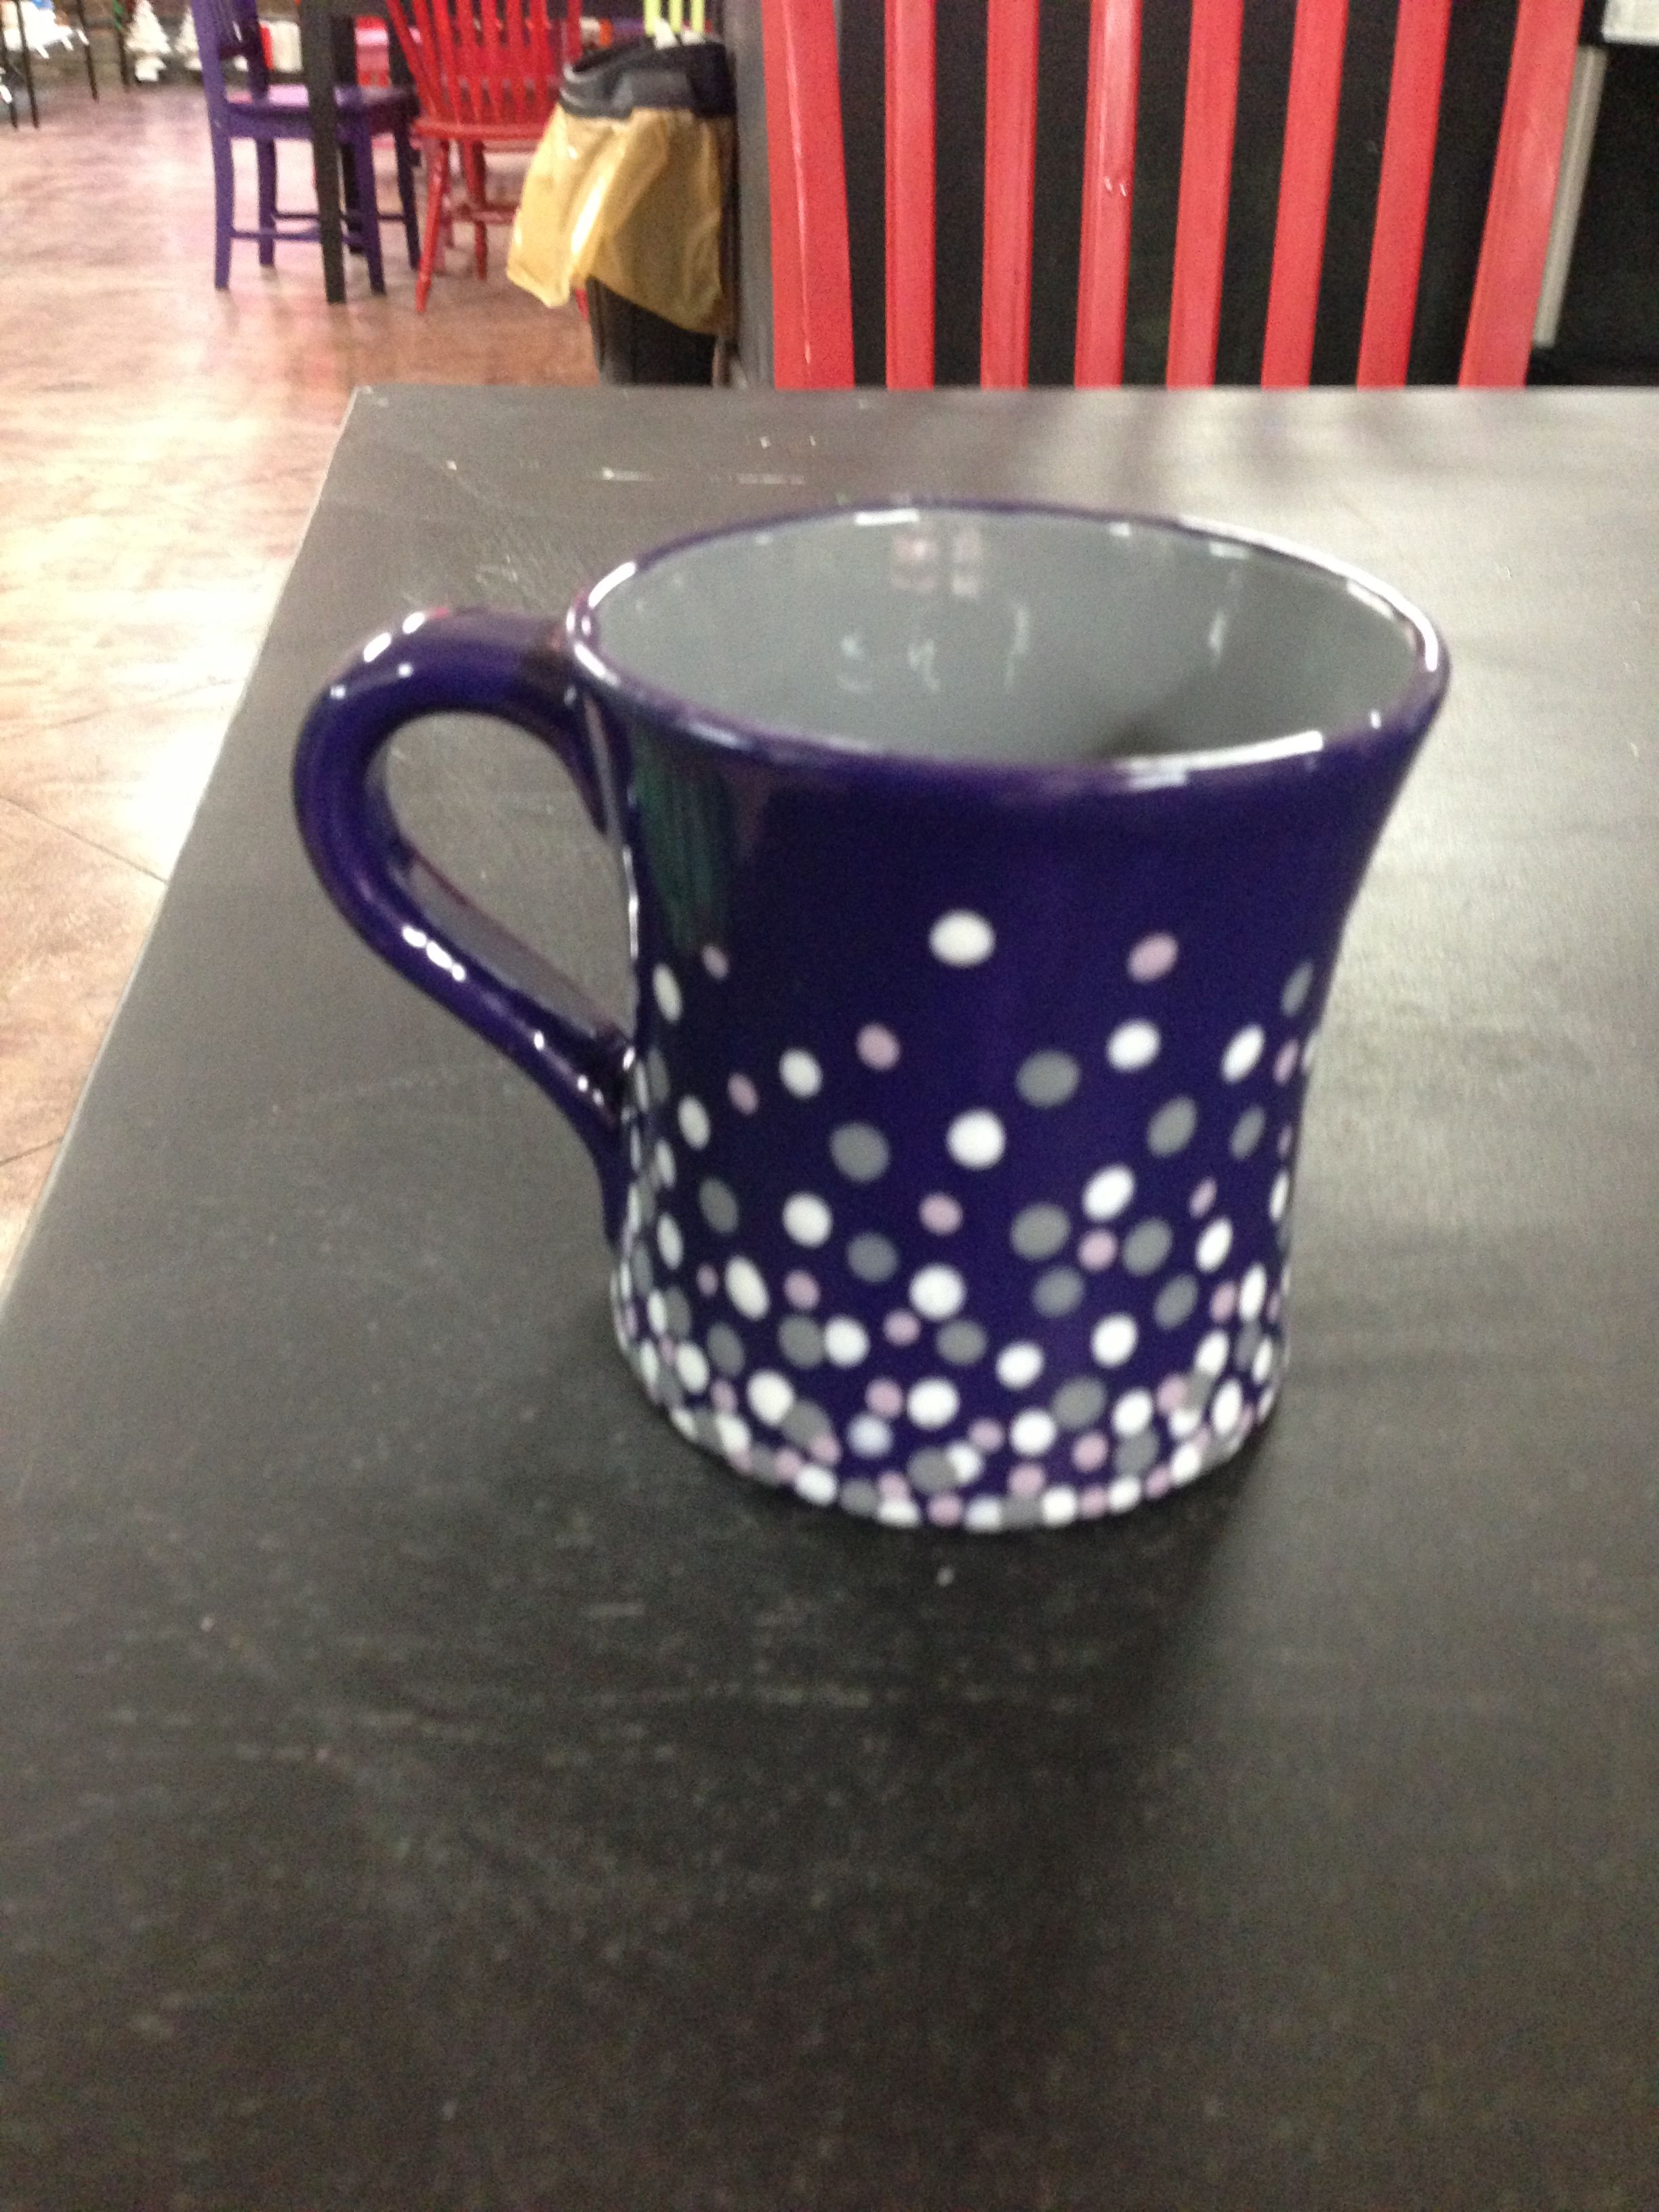 A Few Porcelain Paint Pens Add A Bunch Of Interest To A Plain Mug